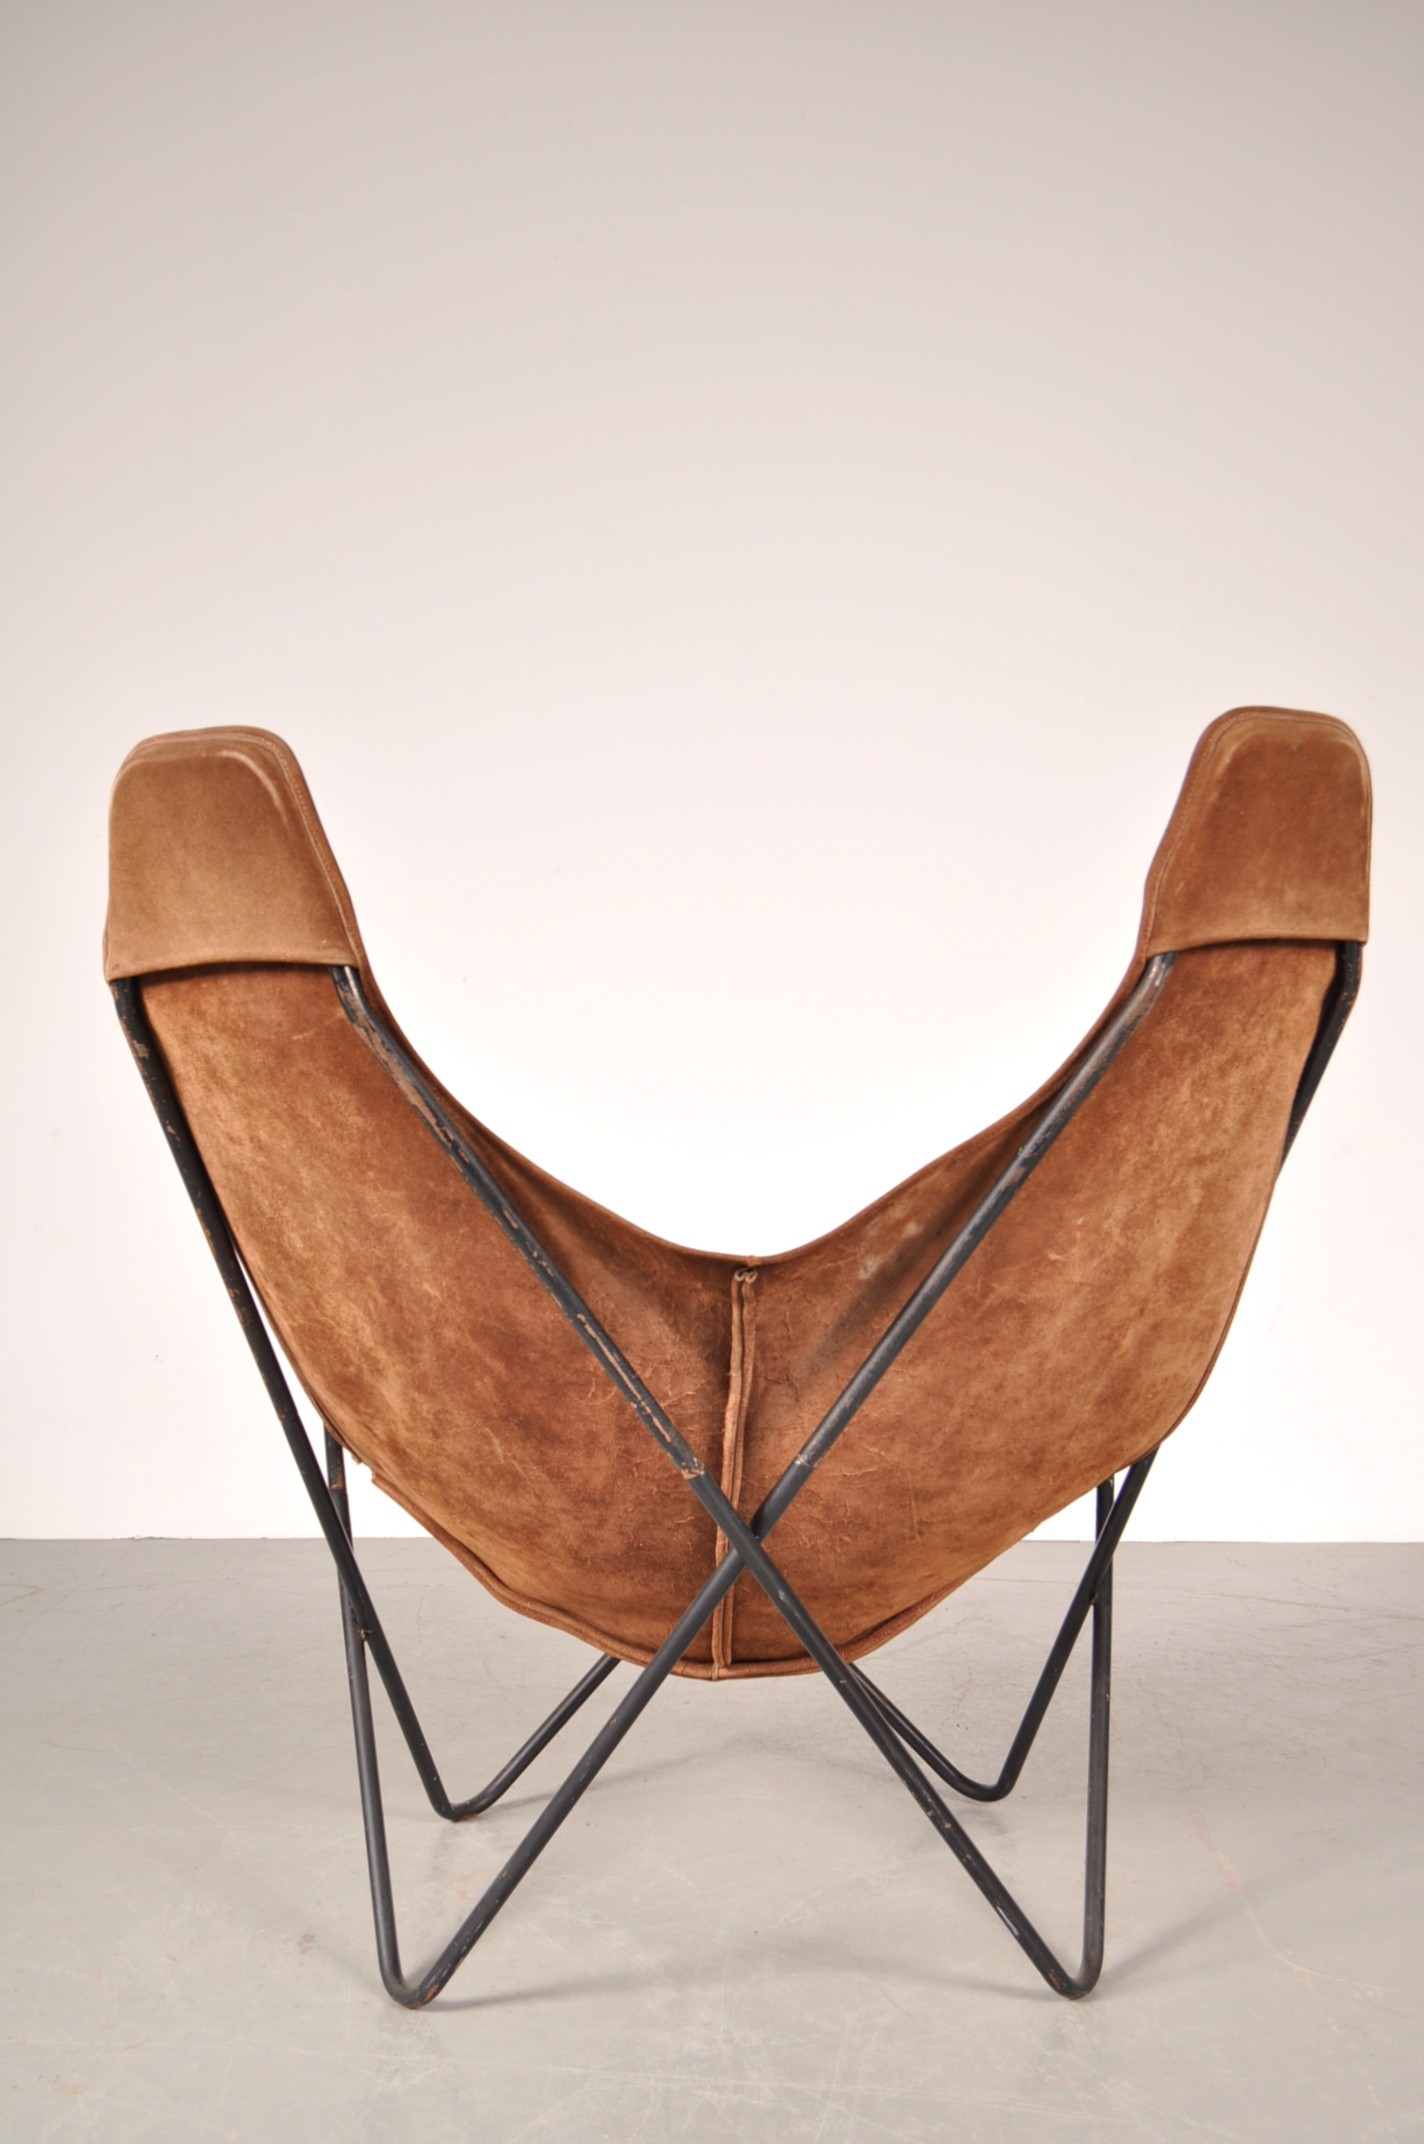 Butterfly Chair Knoll Knoll Butterfly Chair In Metal And Leather Jorge F Hardoy